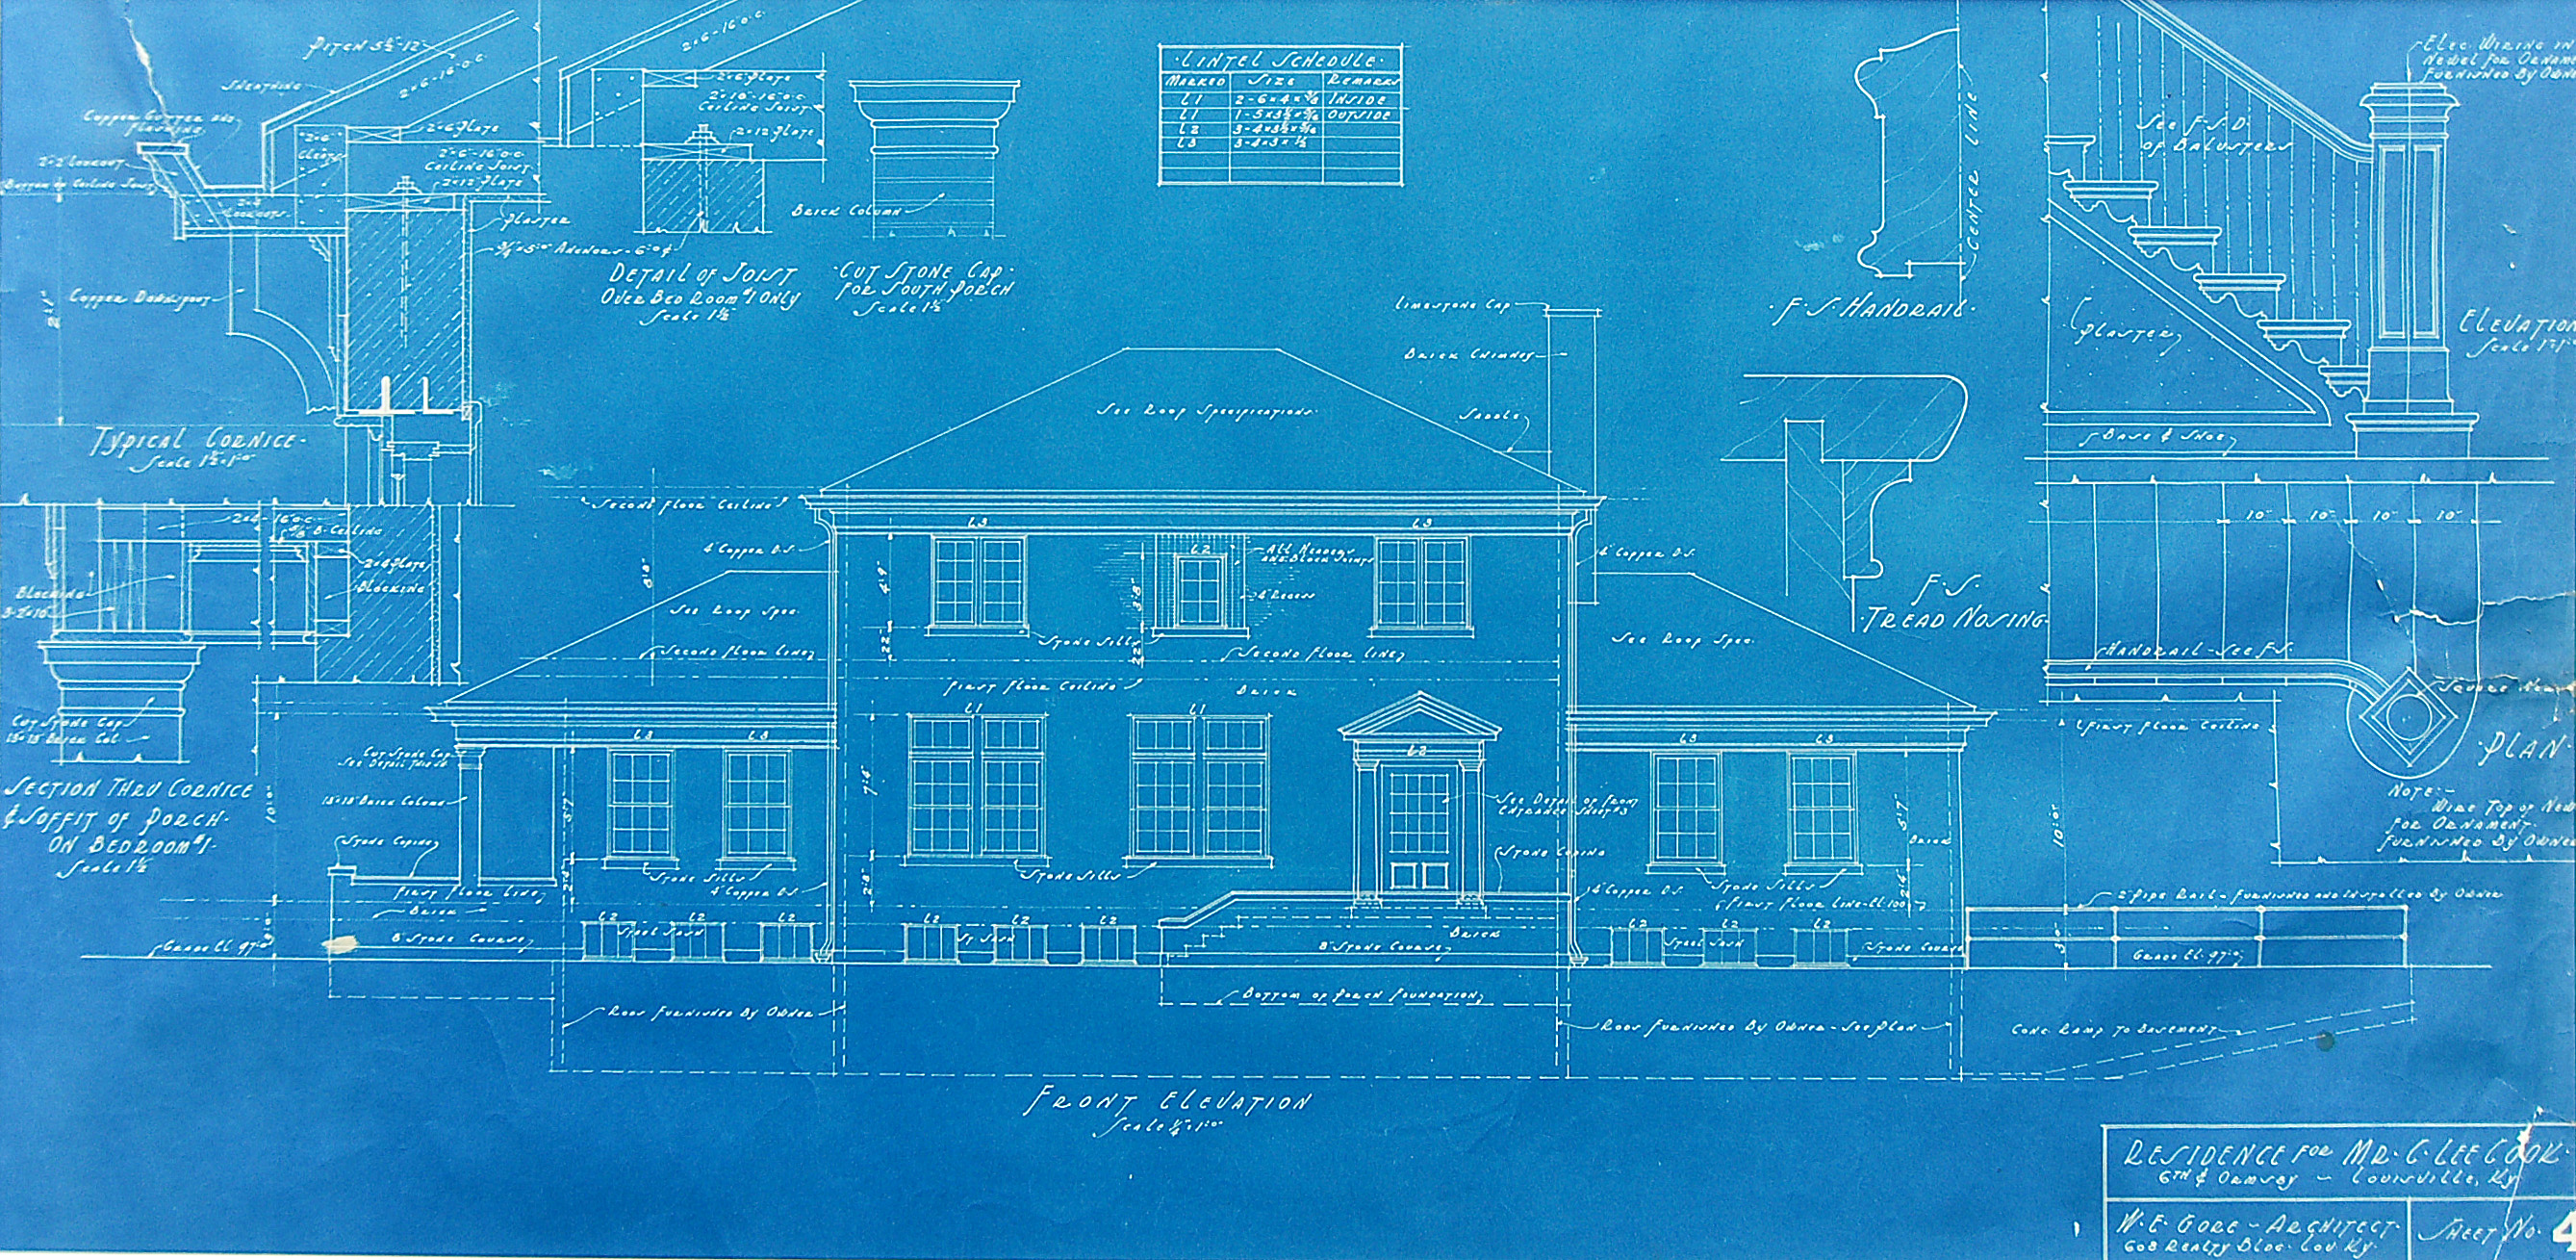 1244 sixth street the blueprints for Blueprint homes